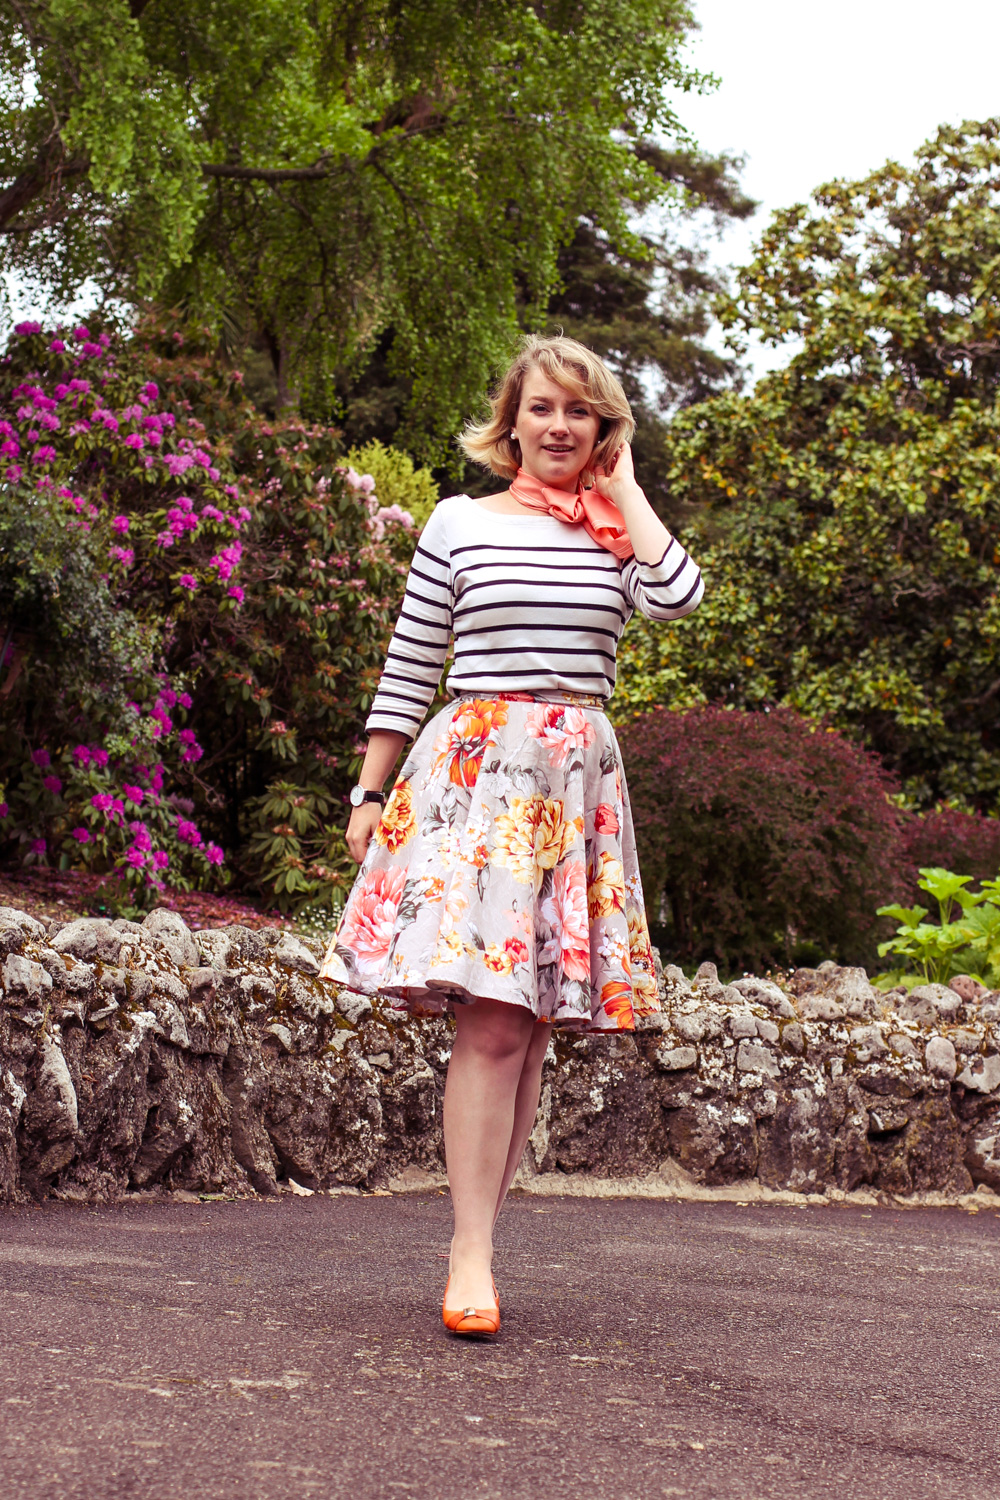 @findingfemme wears stripes with floral etsy skirt.